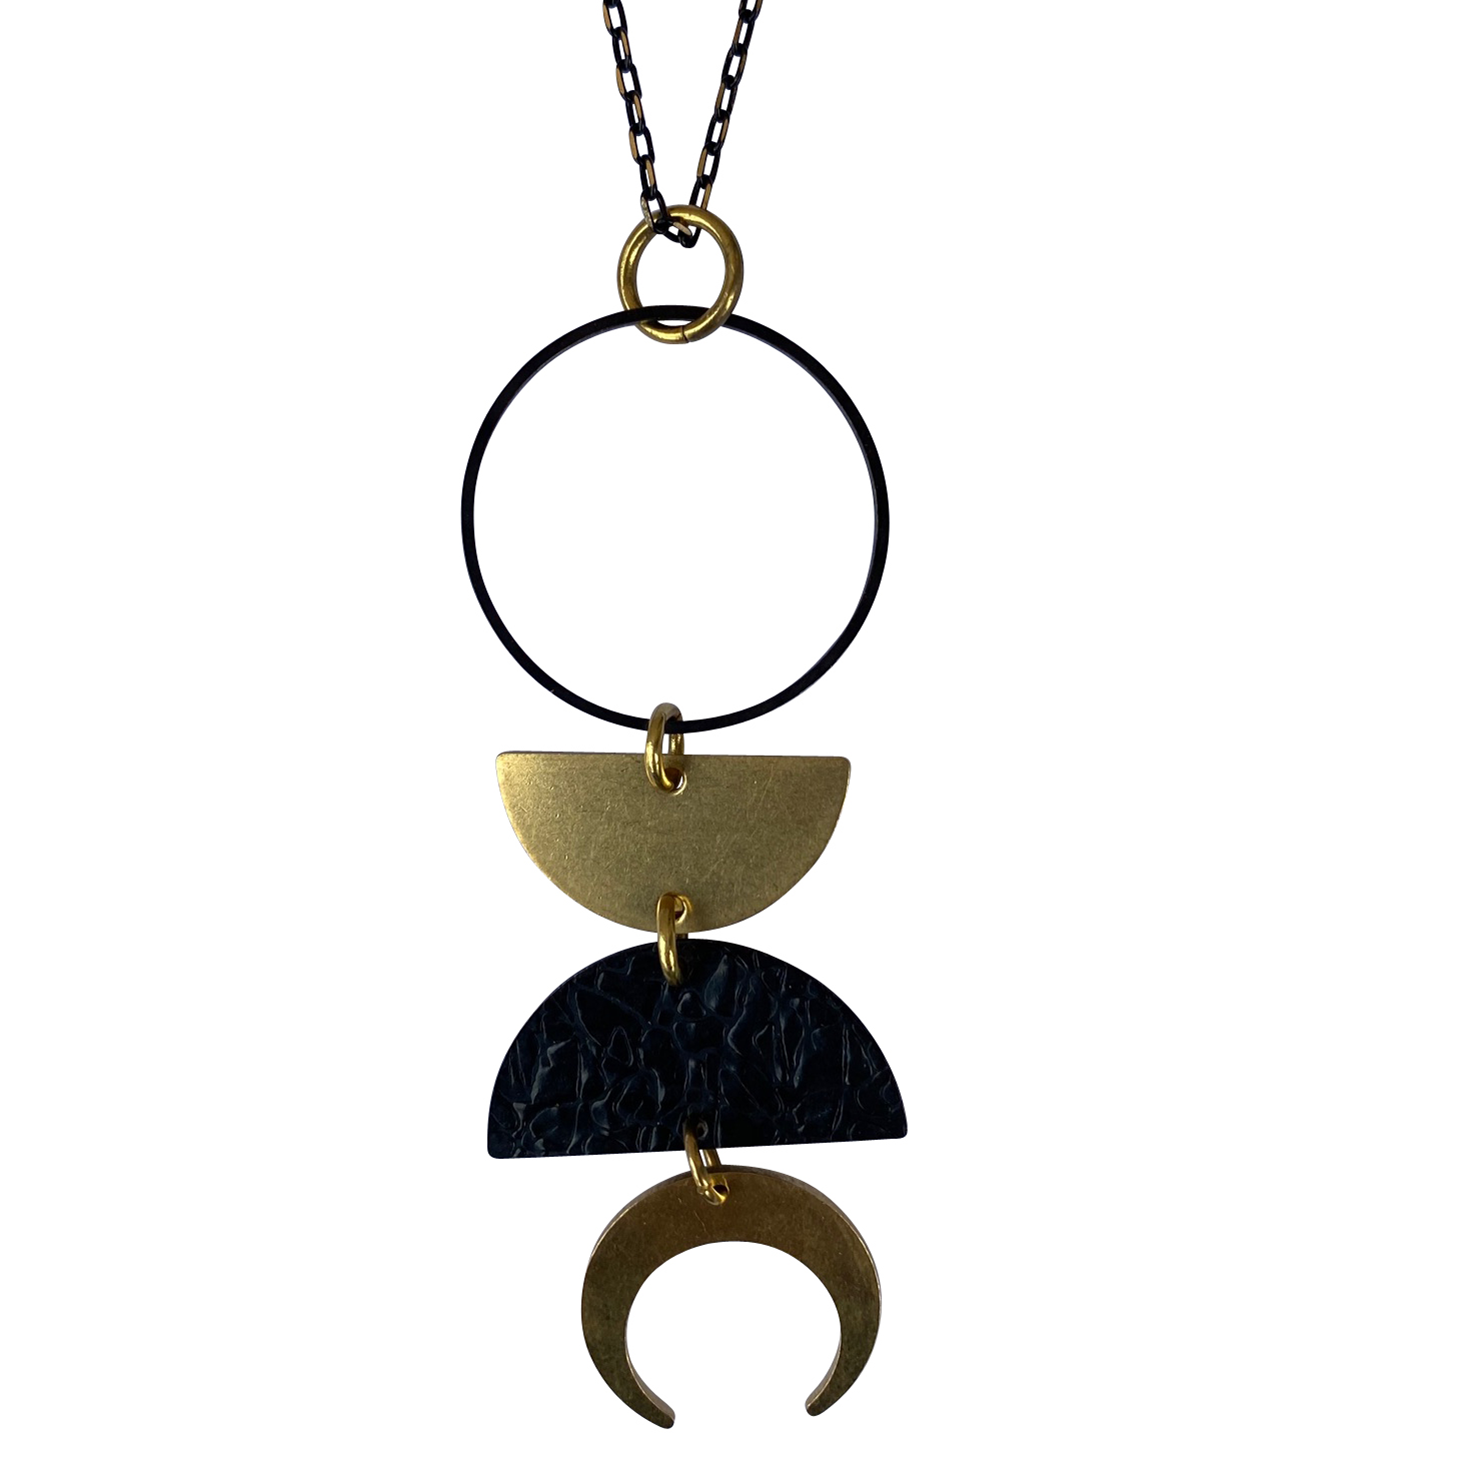 Kaiko Pendant Geometric Half Moon Crescent Moon Black and Brass